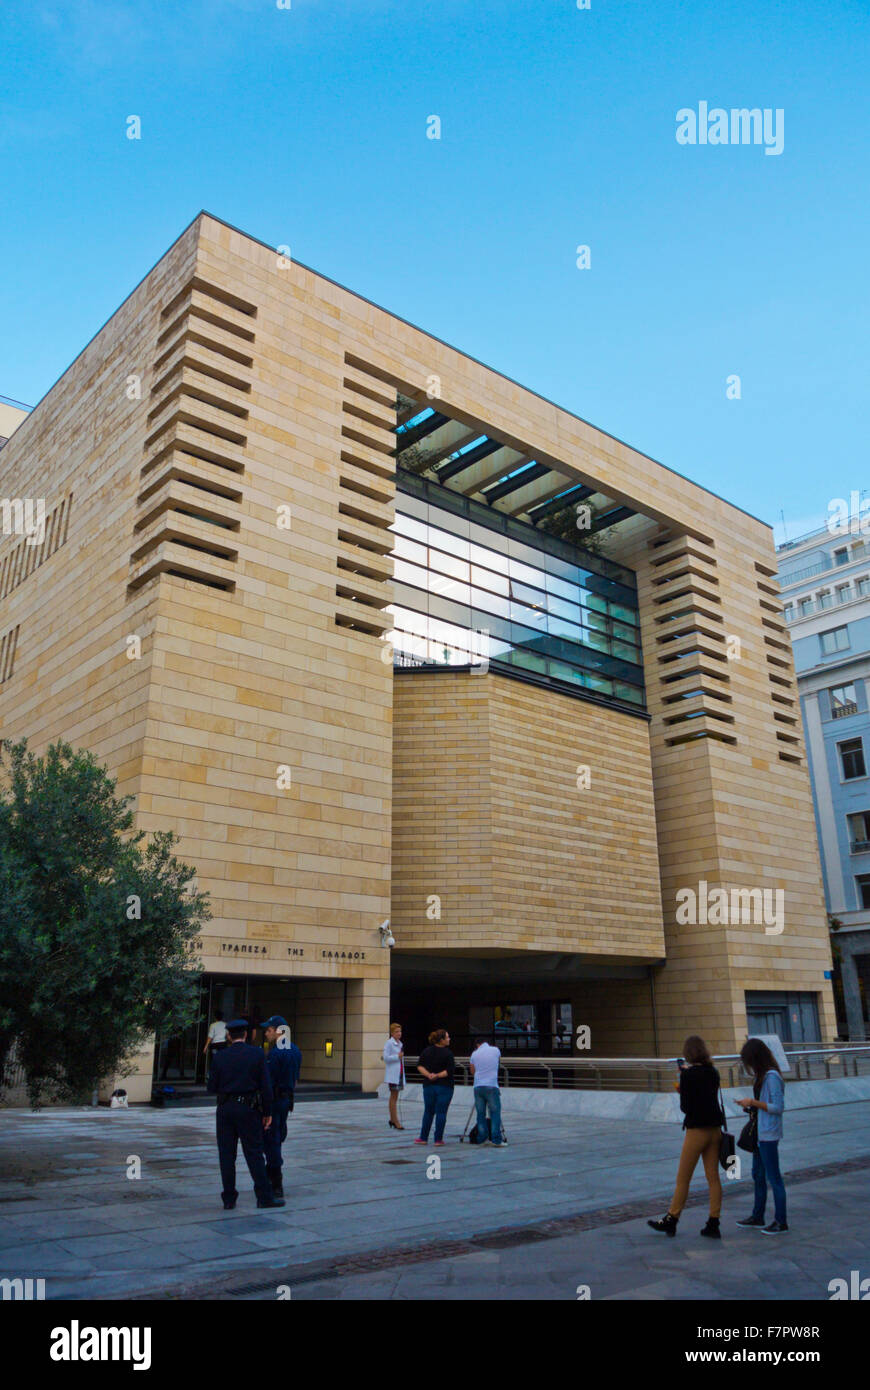 Mela building, National Bank of Greece, Eilou street, Athens, Greece - Stock Image